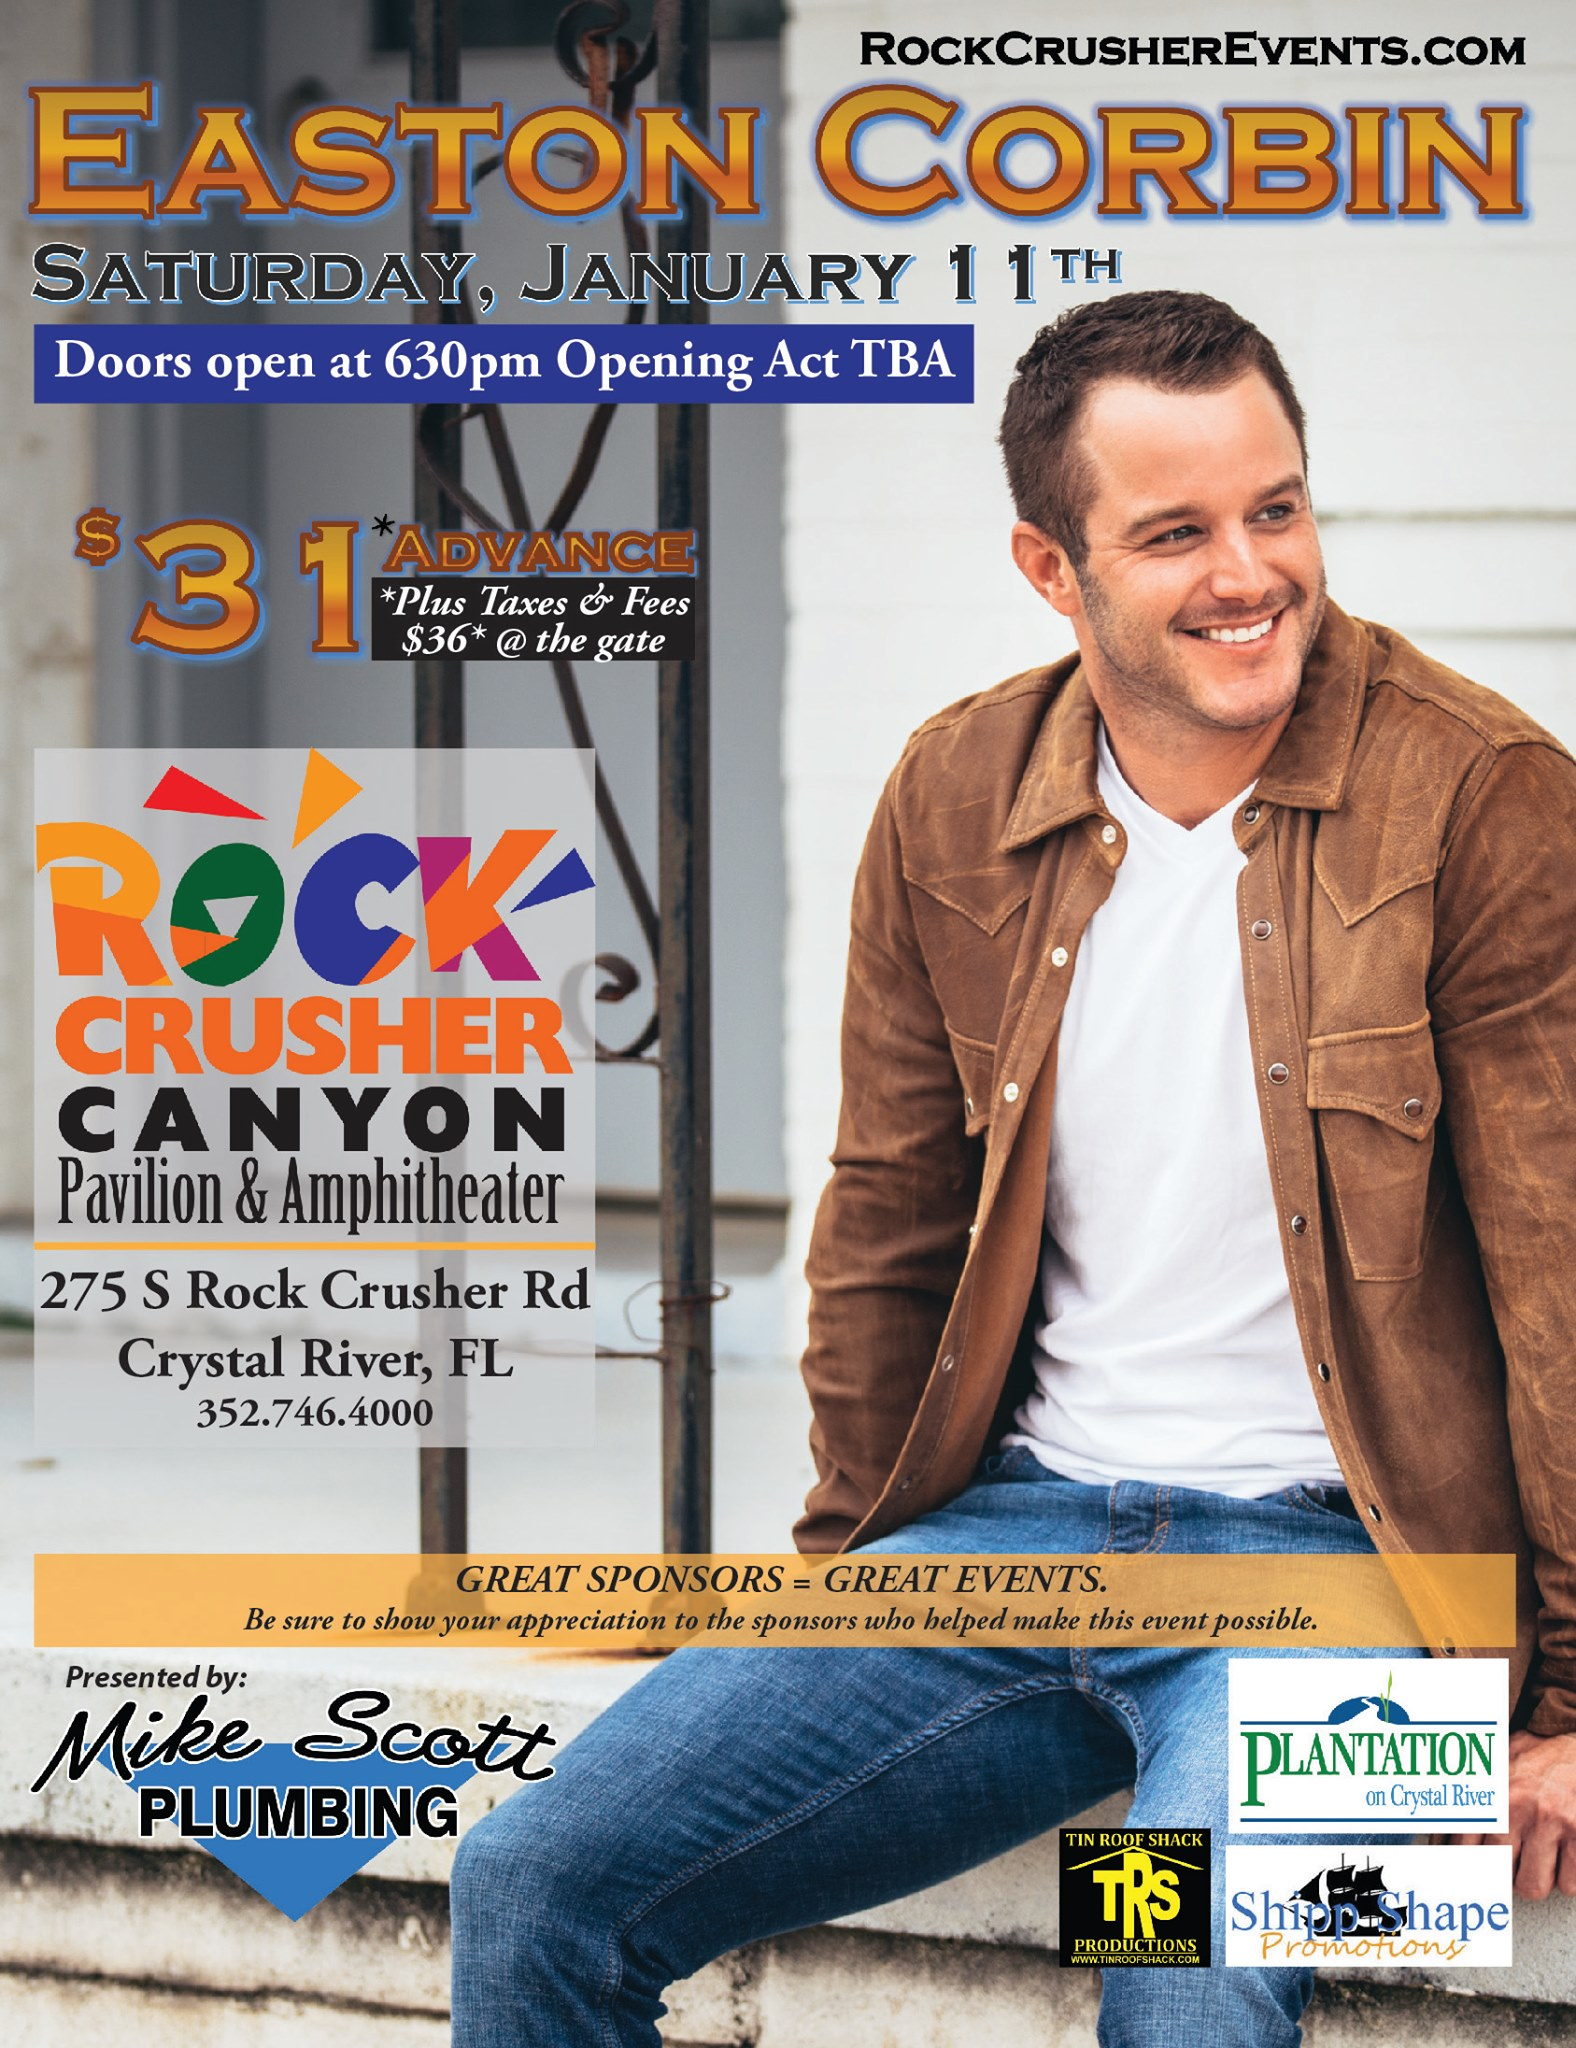 Eastin Corbin live in concert at rock crusher canyon